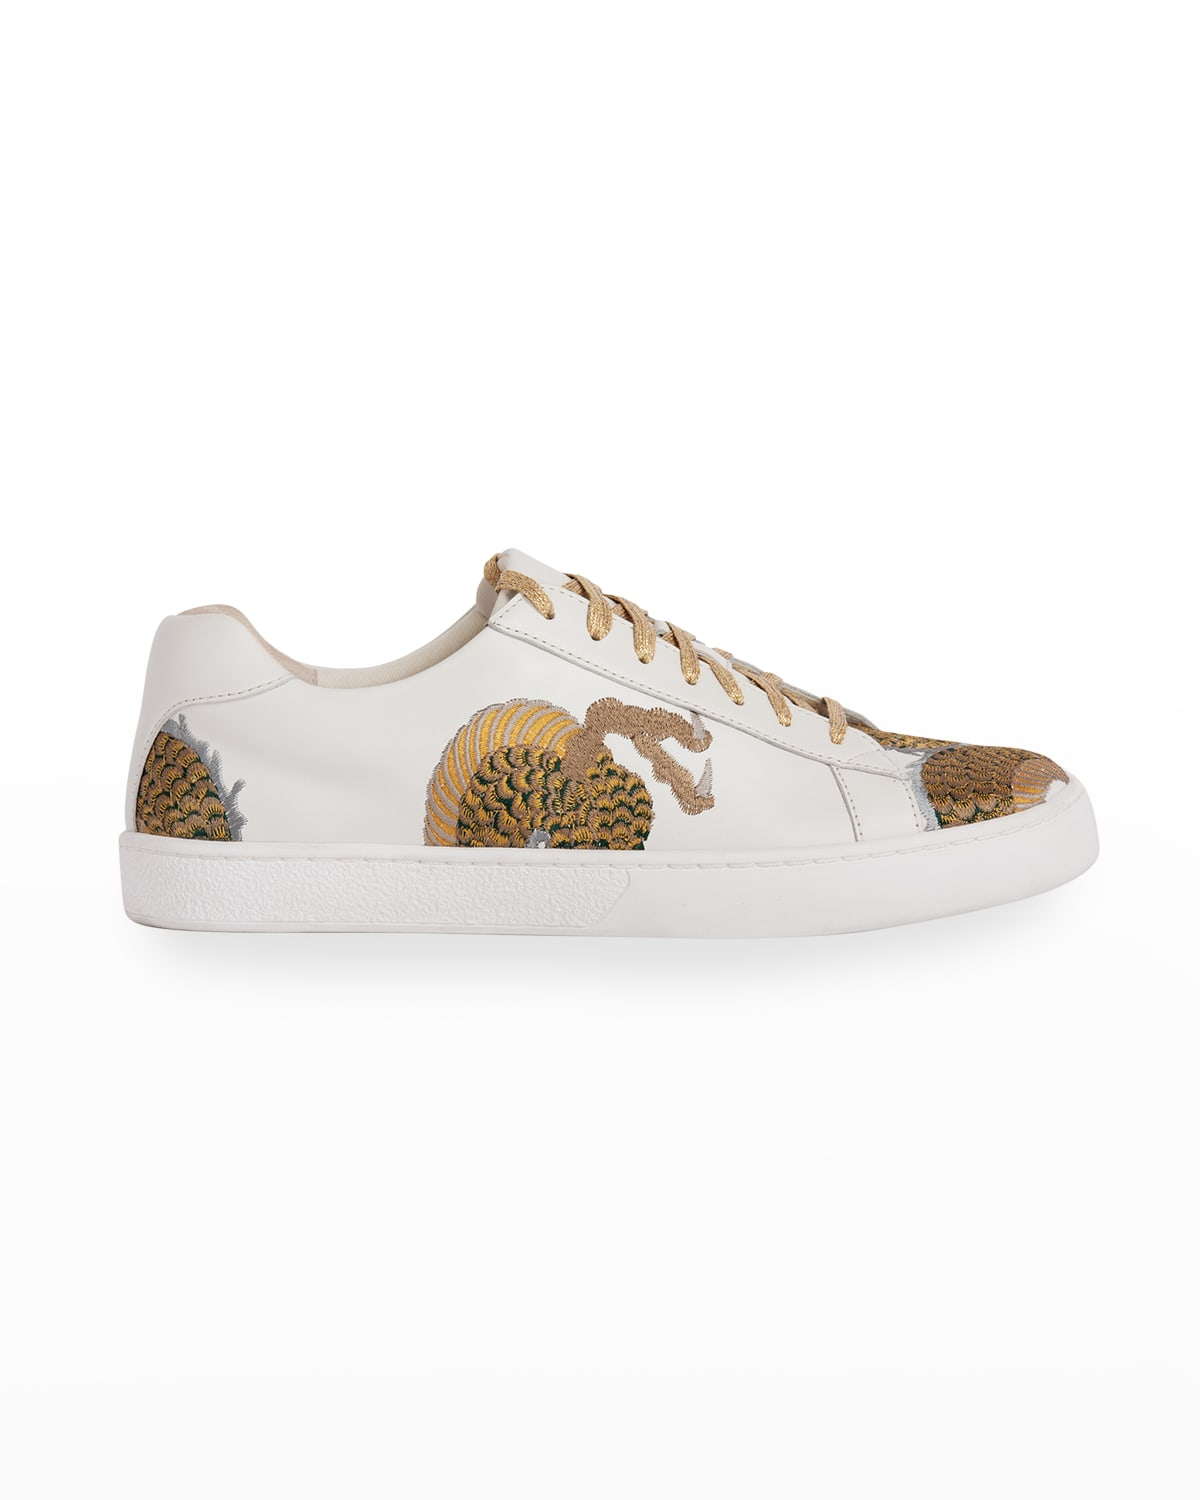 Dragon-Embroidered Fashion Low-Top Sneakers